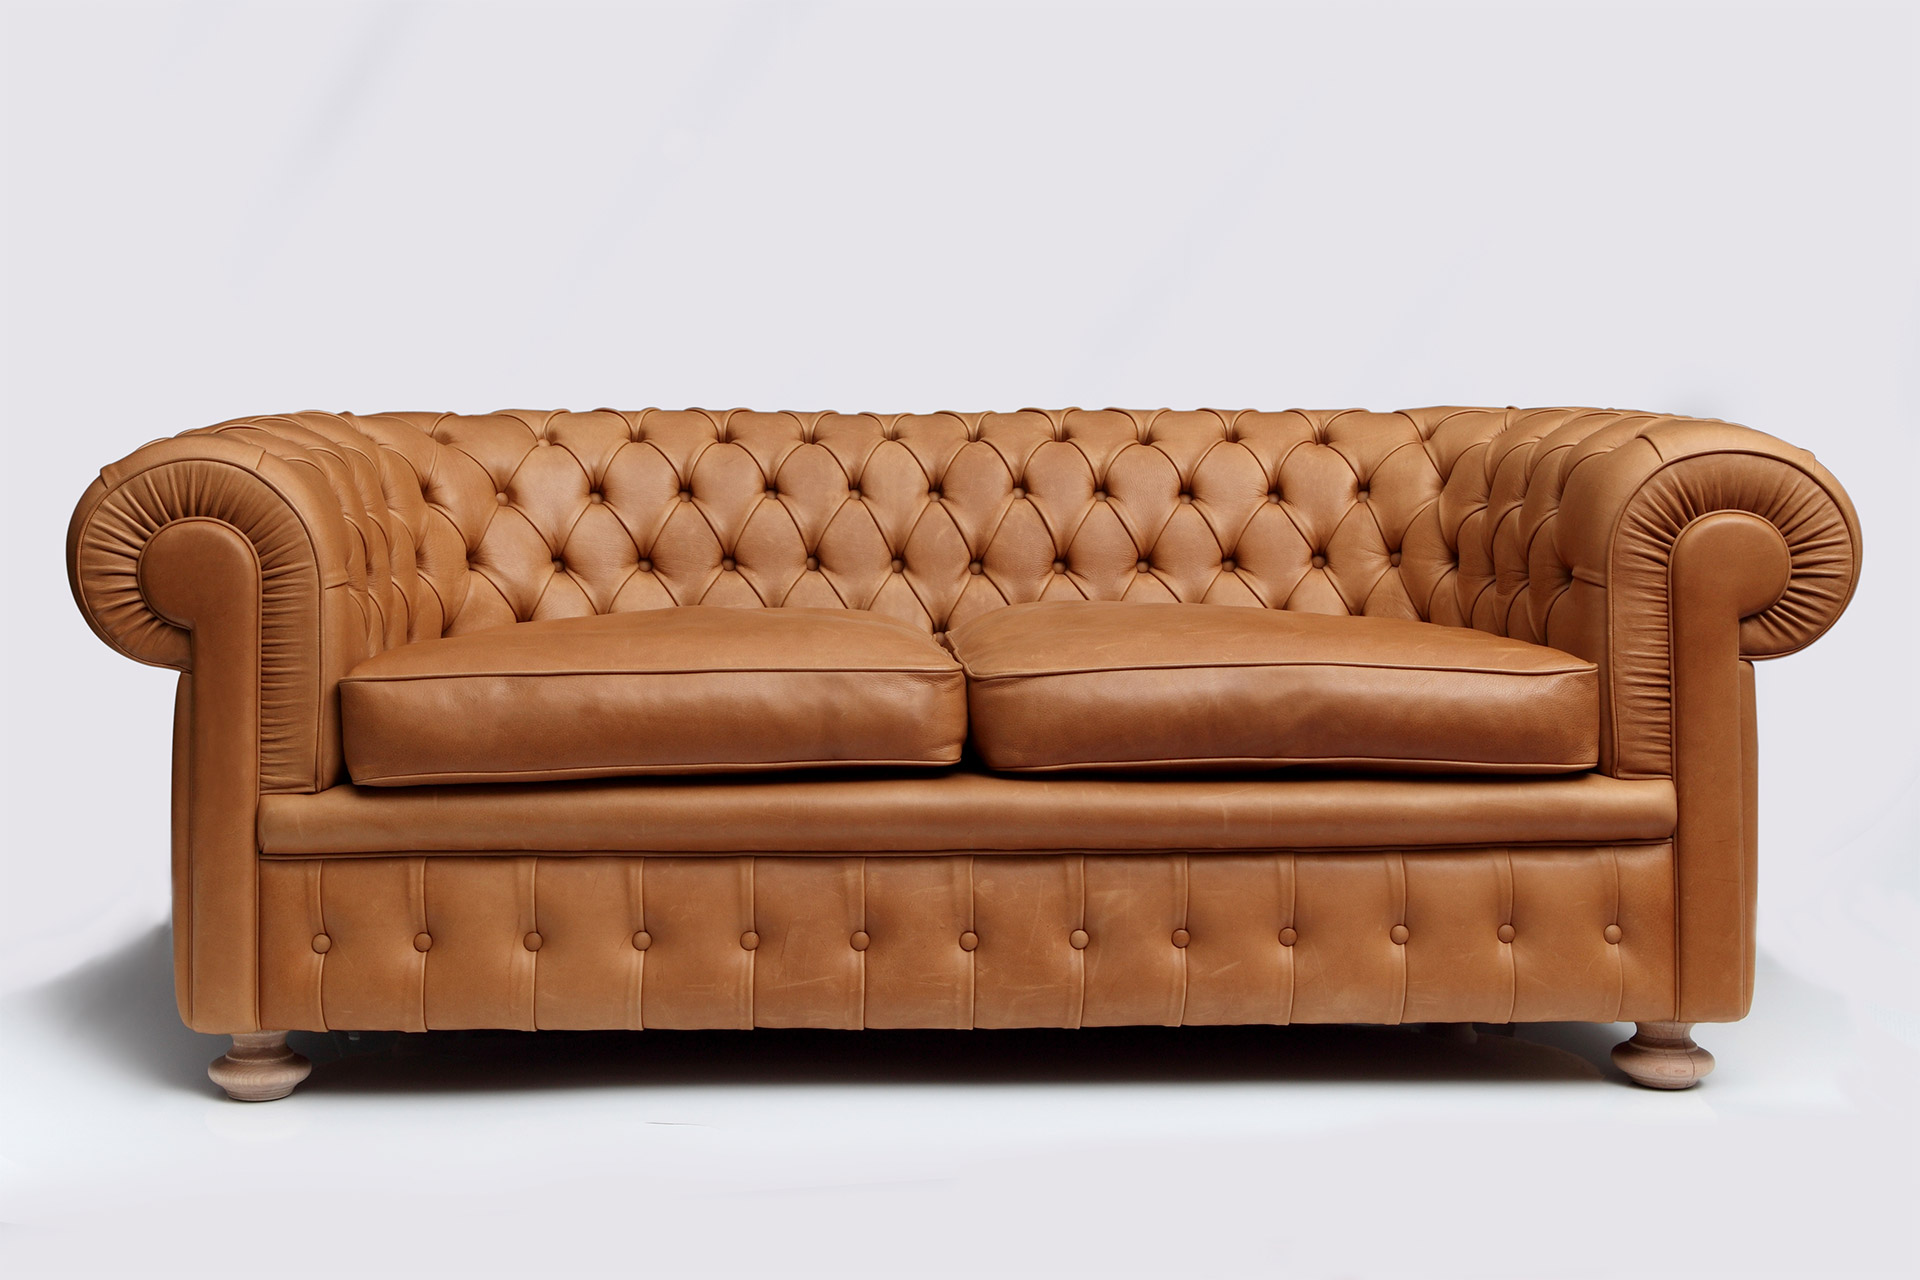 hand crafted sofa scandaletti